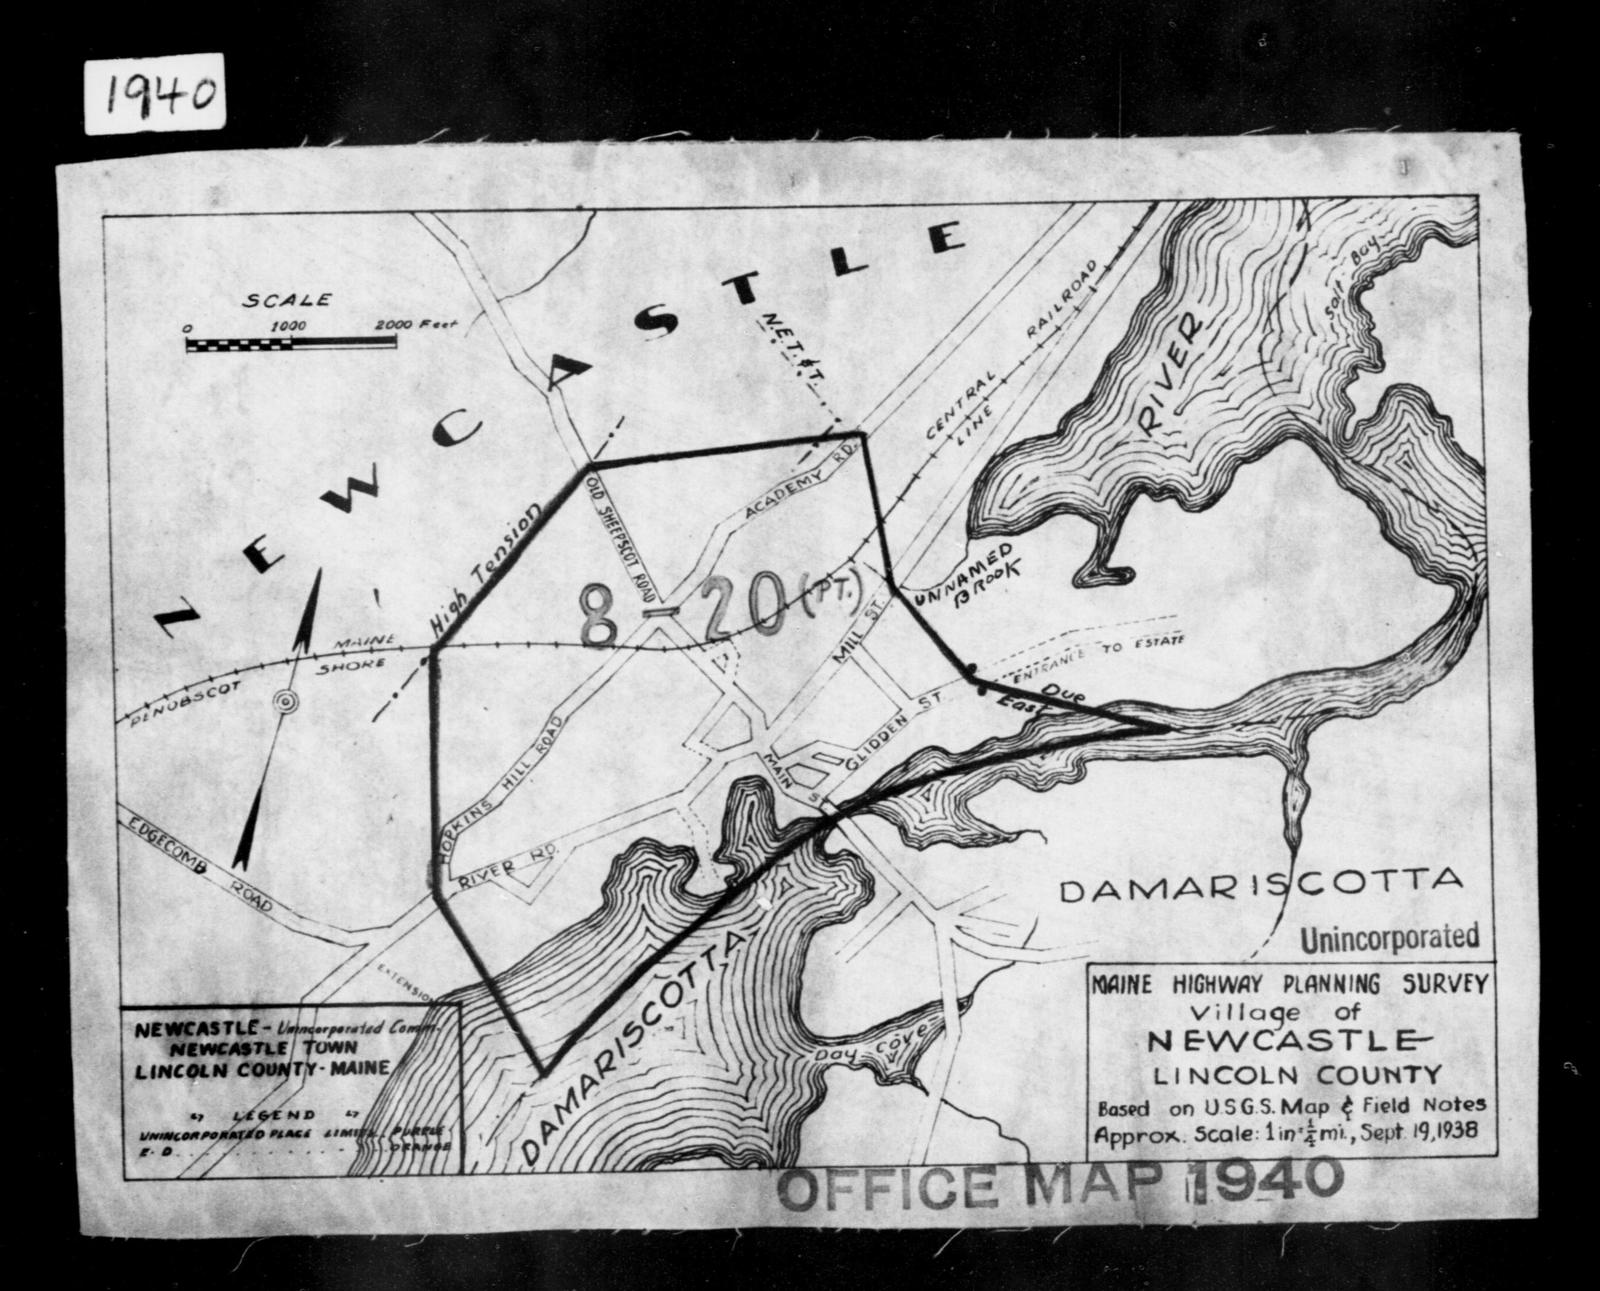 1940 Census Enumeration District Maps - Maine - Lincoln County - Newcastle - ED 8-20